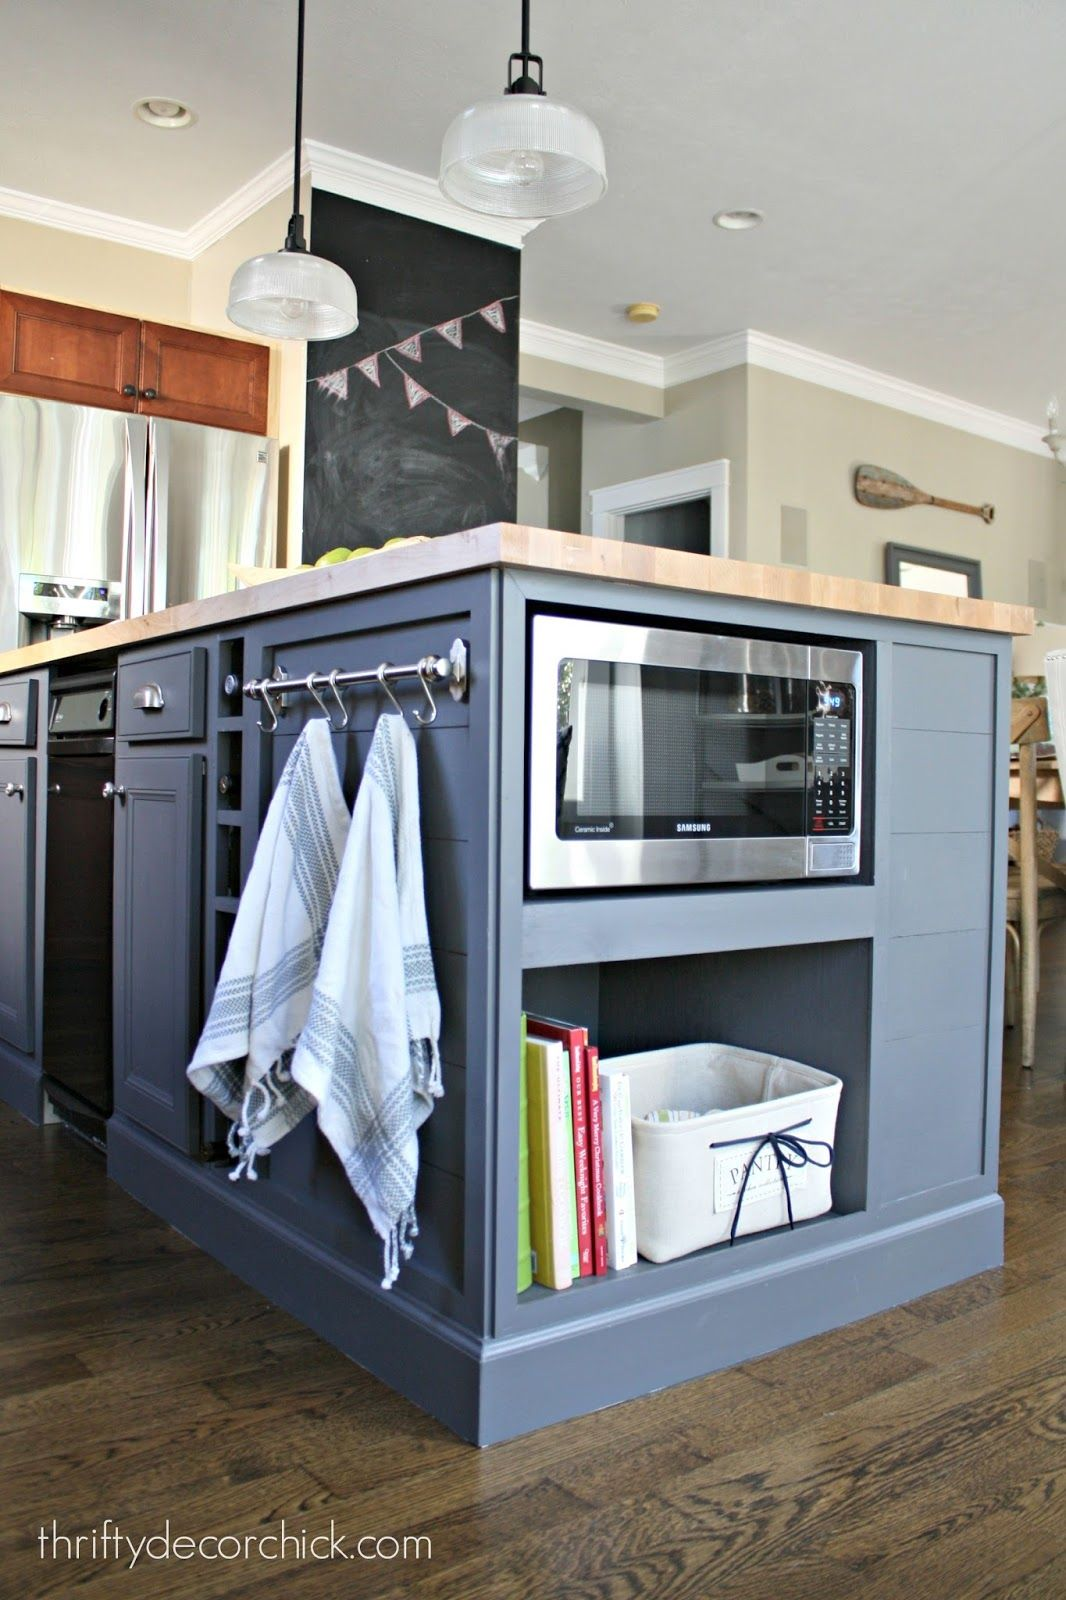 Microwave In The Island Finally Kitchen Island Design Diy Kitchen Island Kitchen Renovation